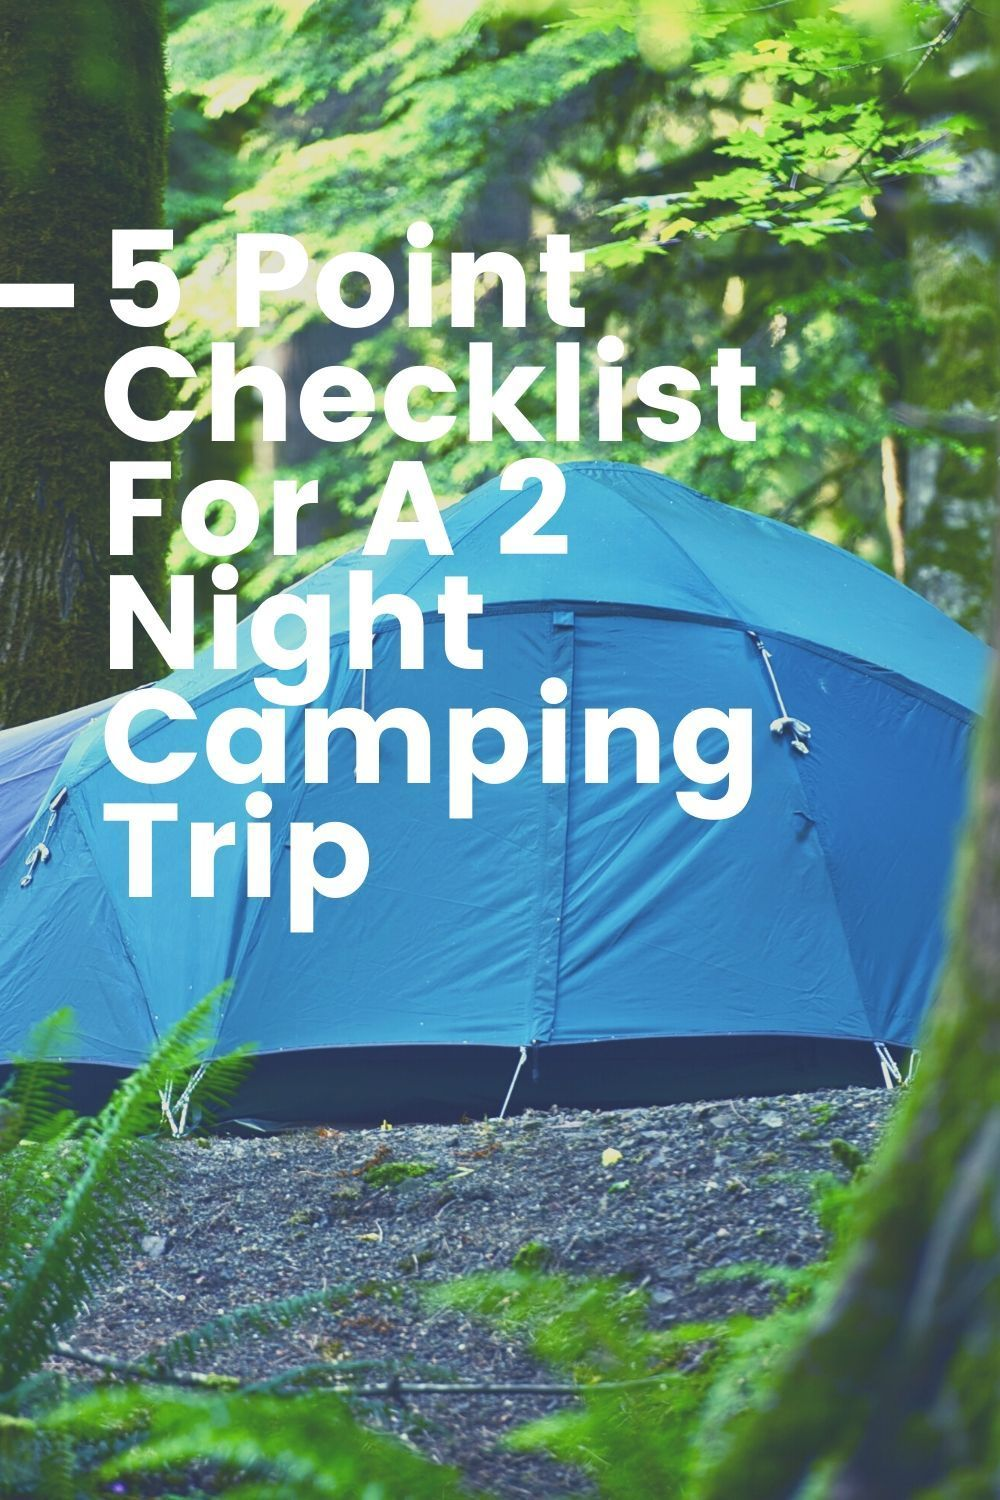 5 Point Checklist For A 2 Night Camping Trip Camping Trips Trip Travel Trailer Camping